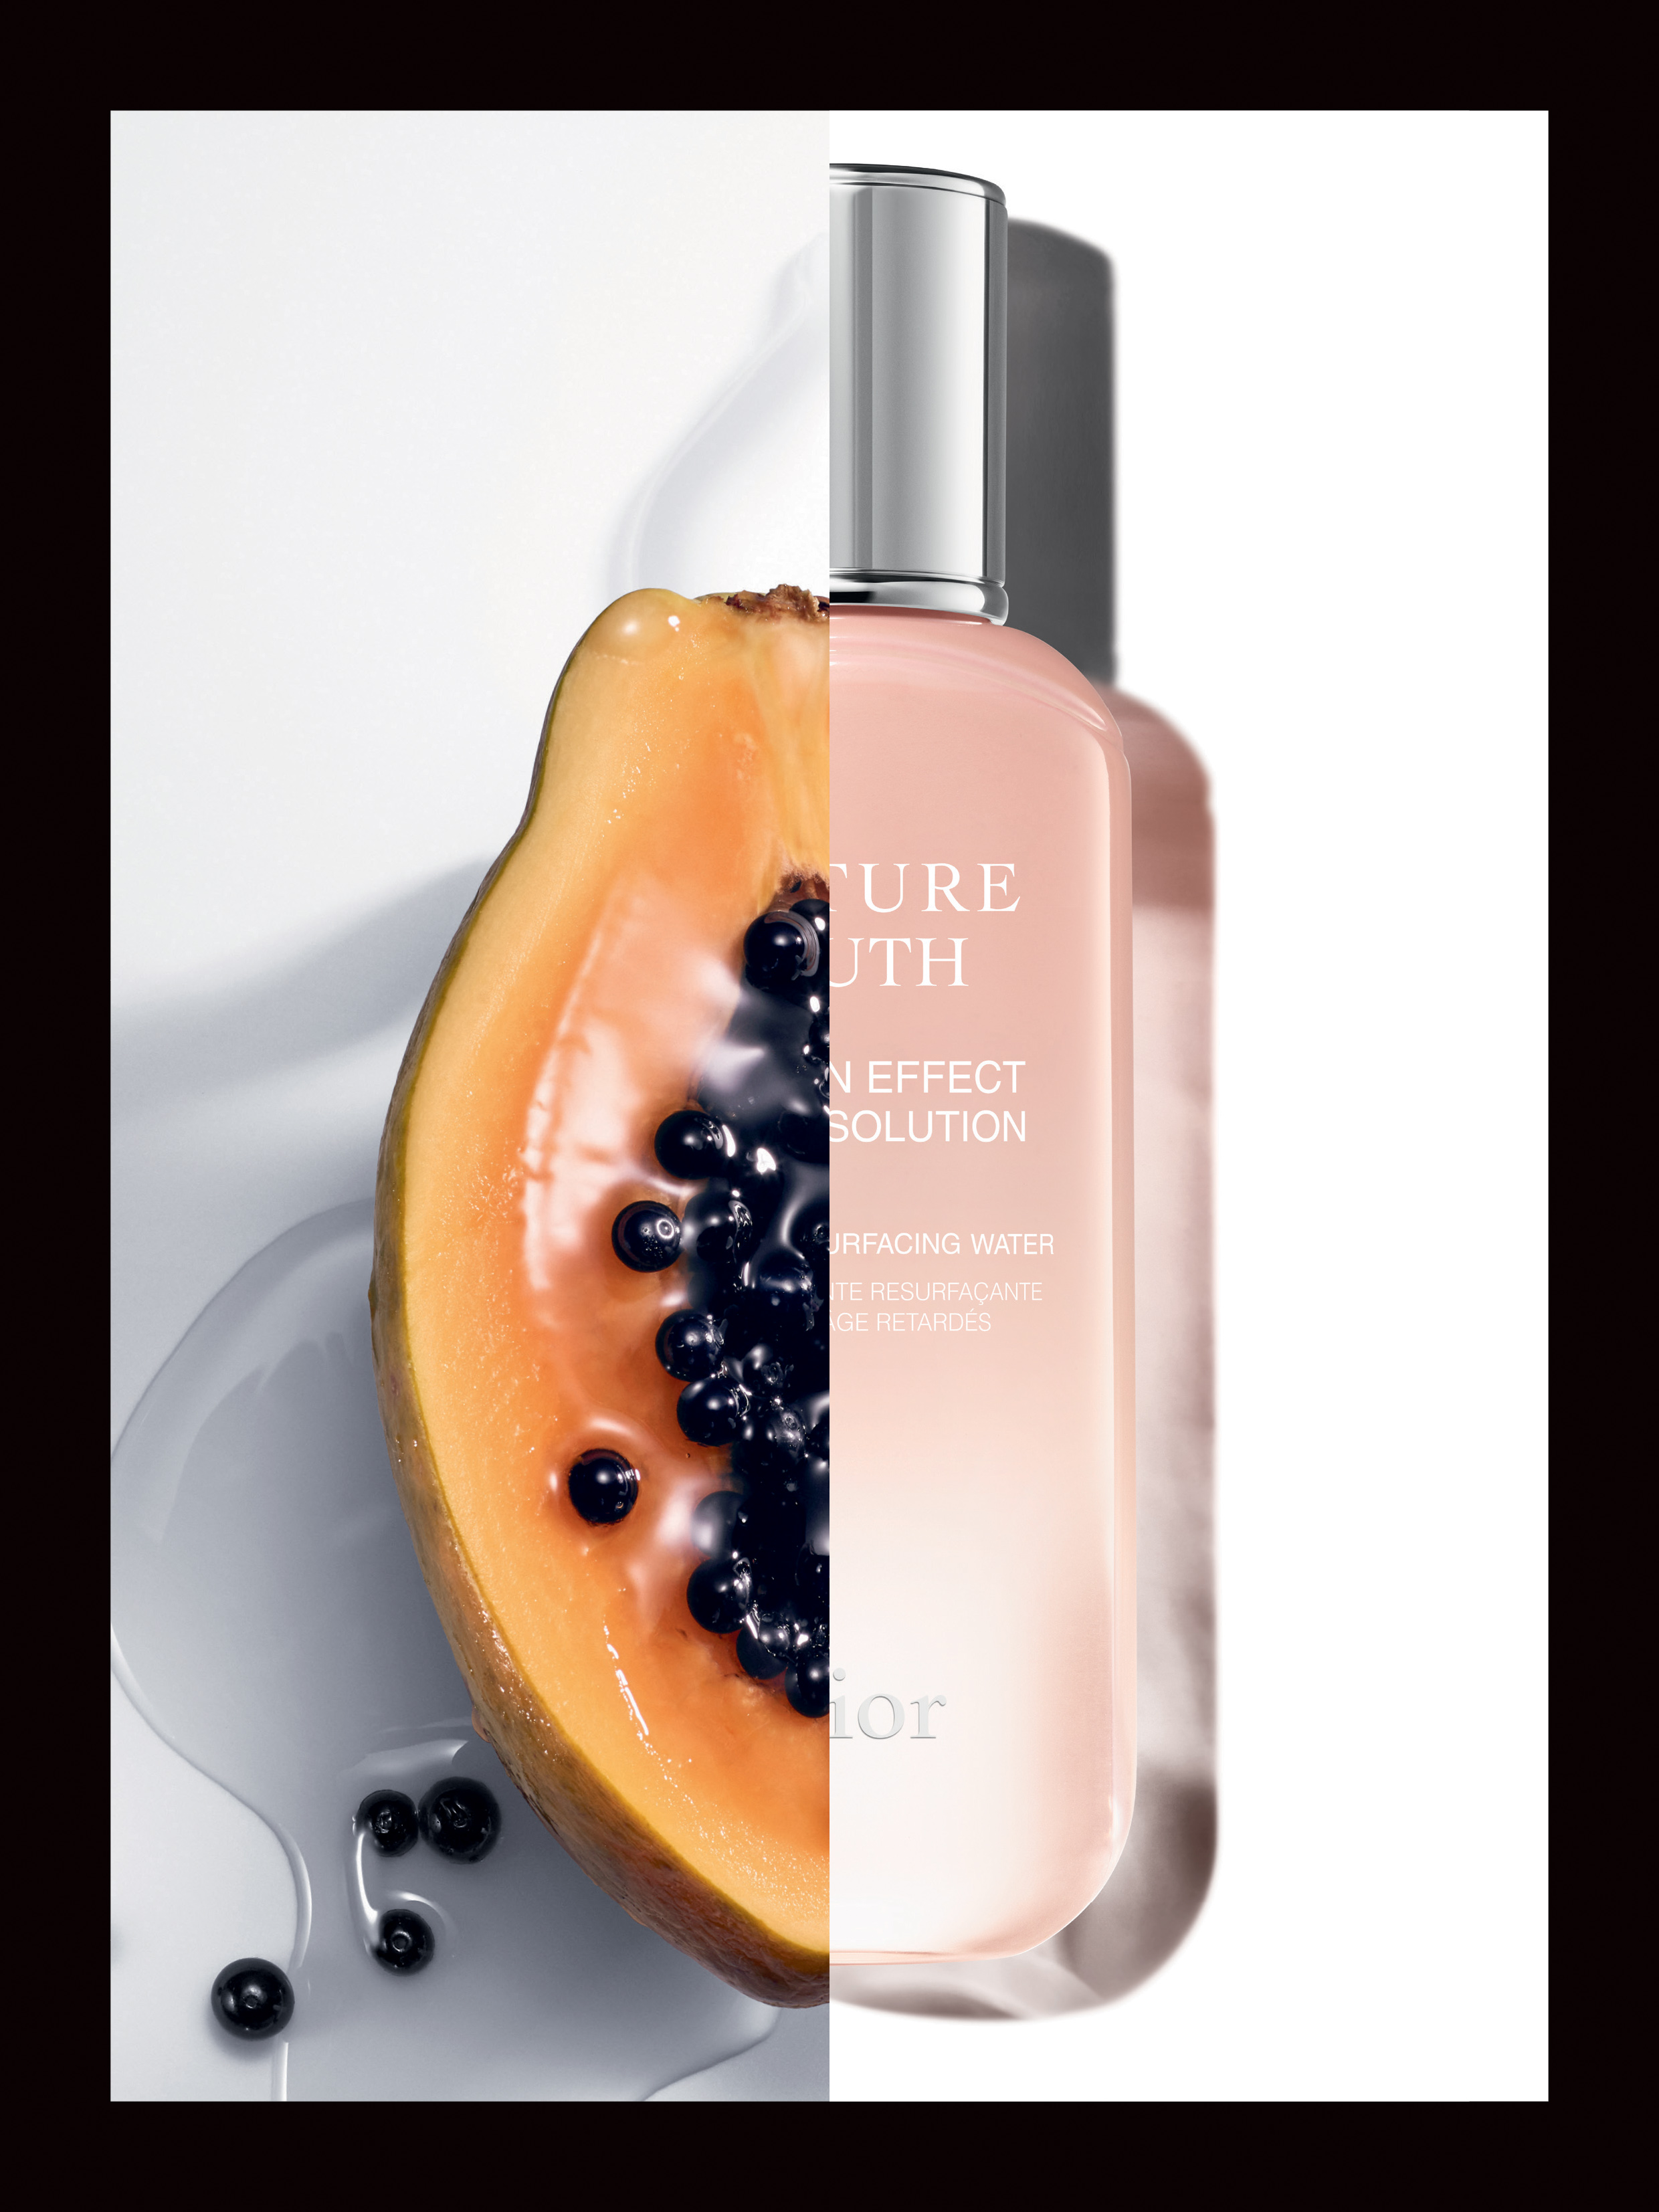 The Age-Delay Resurfacing Water contains rich papaya enzymes to buff away dead skin cells